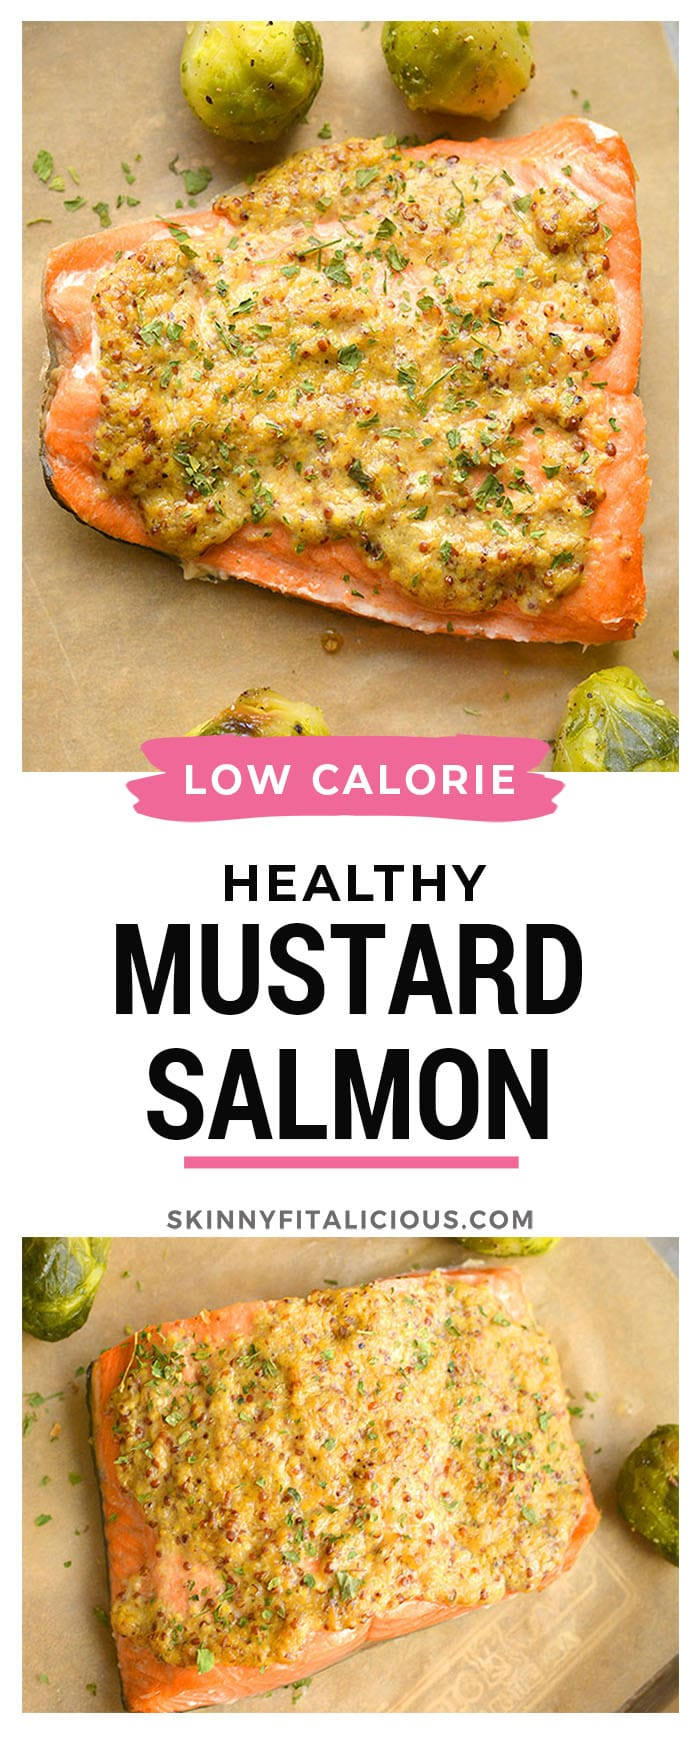 Healthy Air Fryer Mustard Salmon is a delicious mustard-glazed salmon recipe ready in less than 10 minutes. Pair it with a vegetable and another side for a simple nutrient dense meal that's naturally low calorie and gluten free.